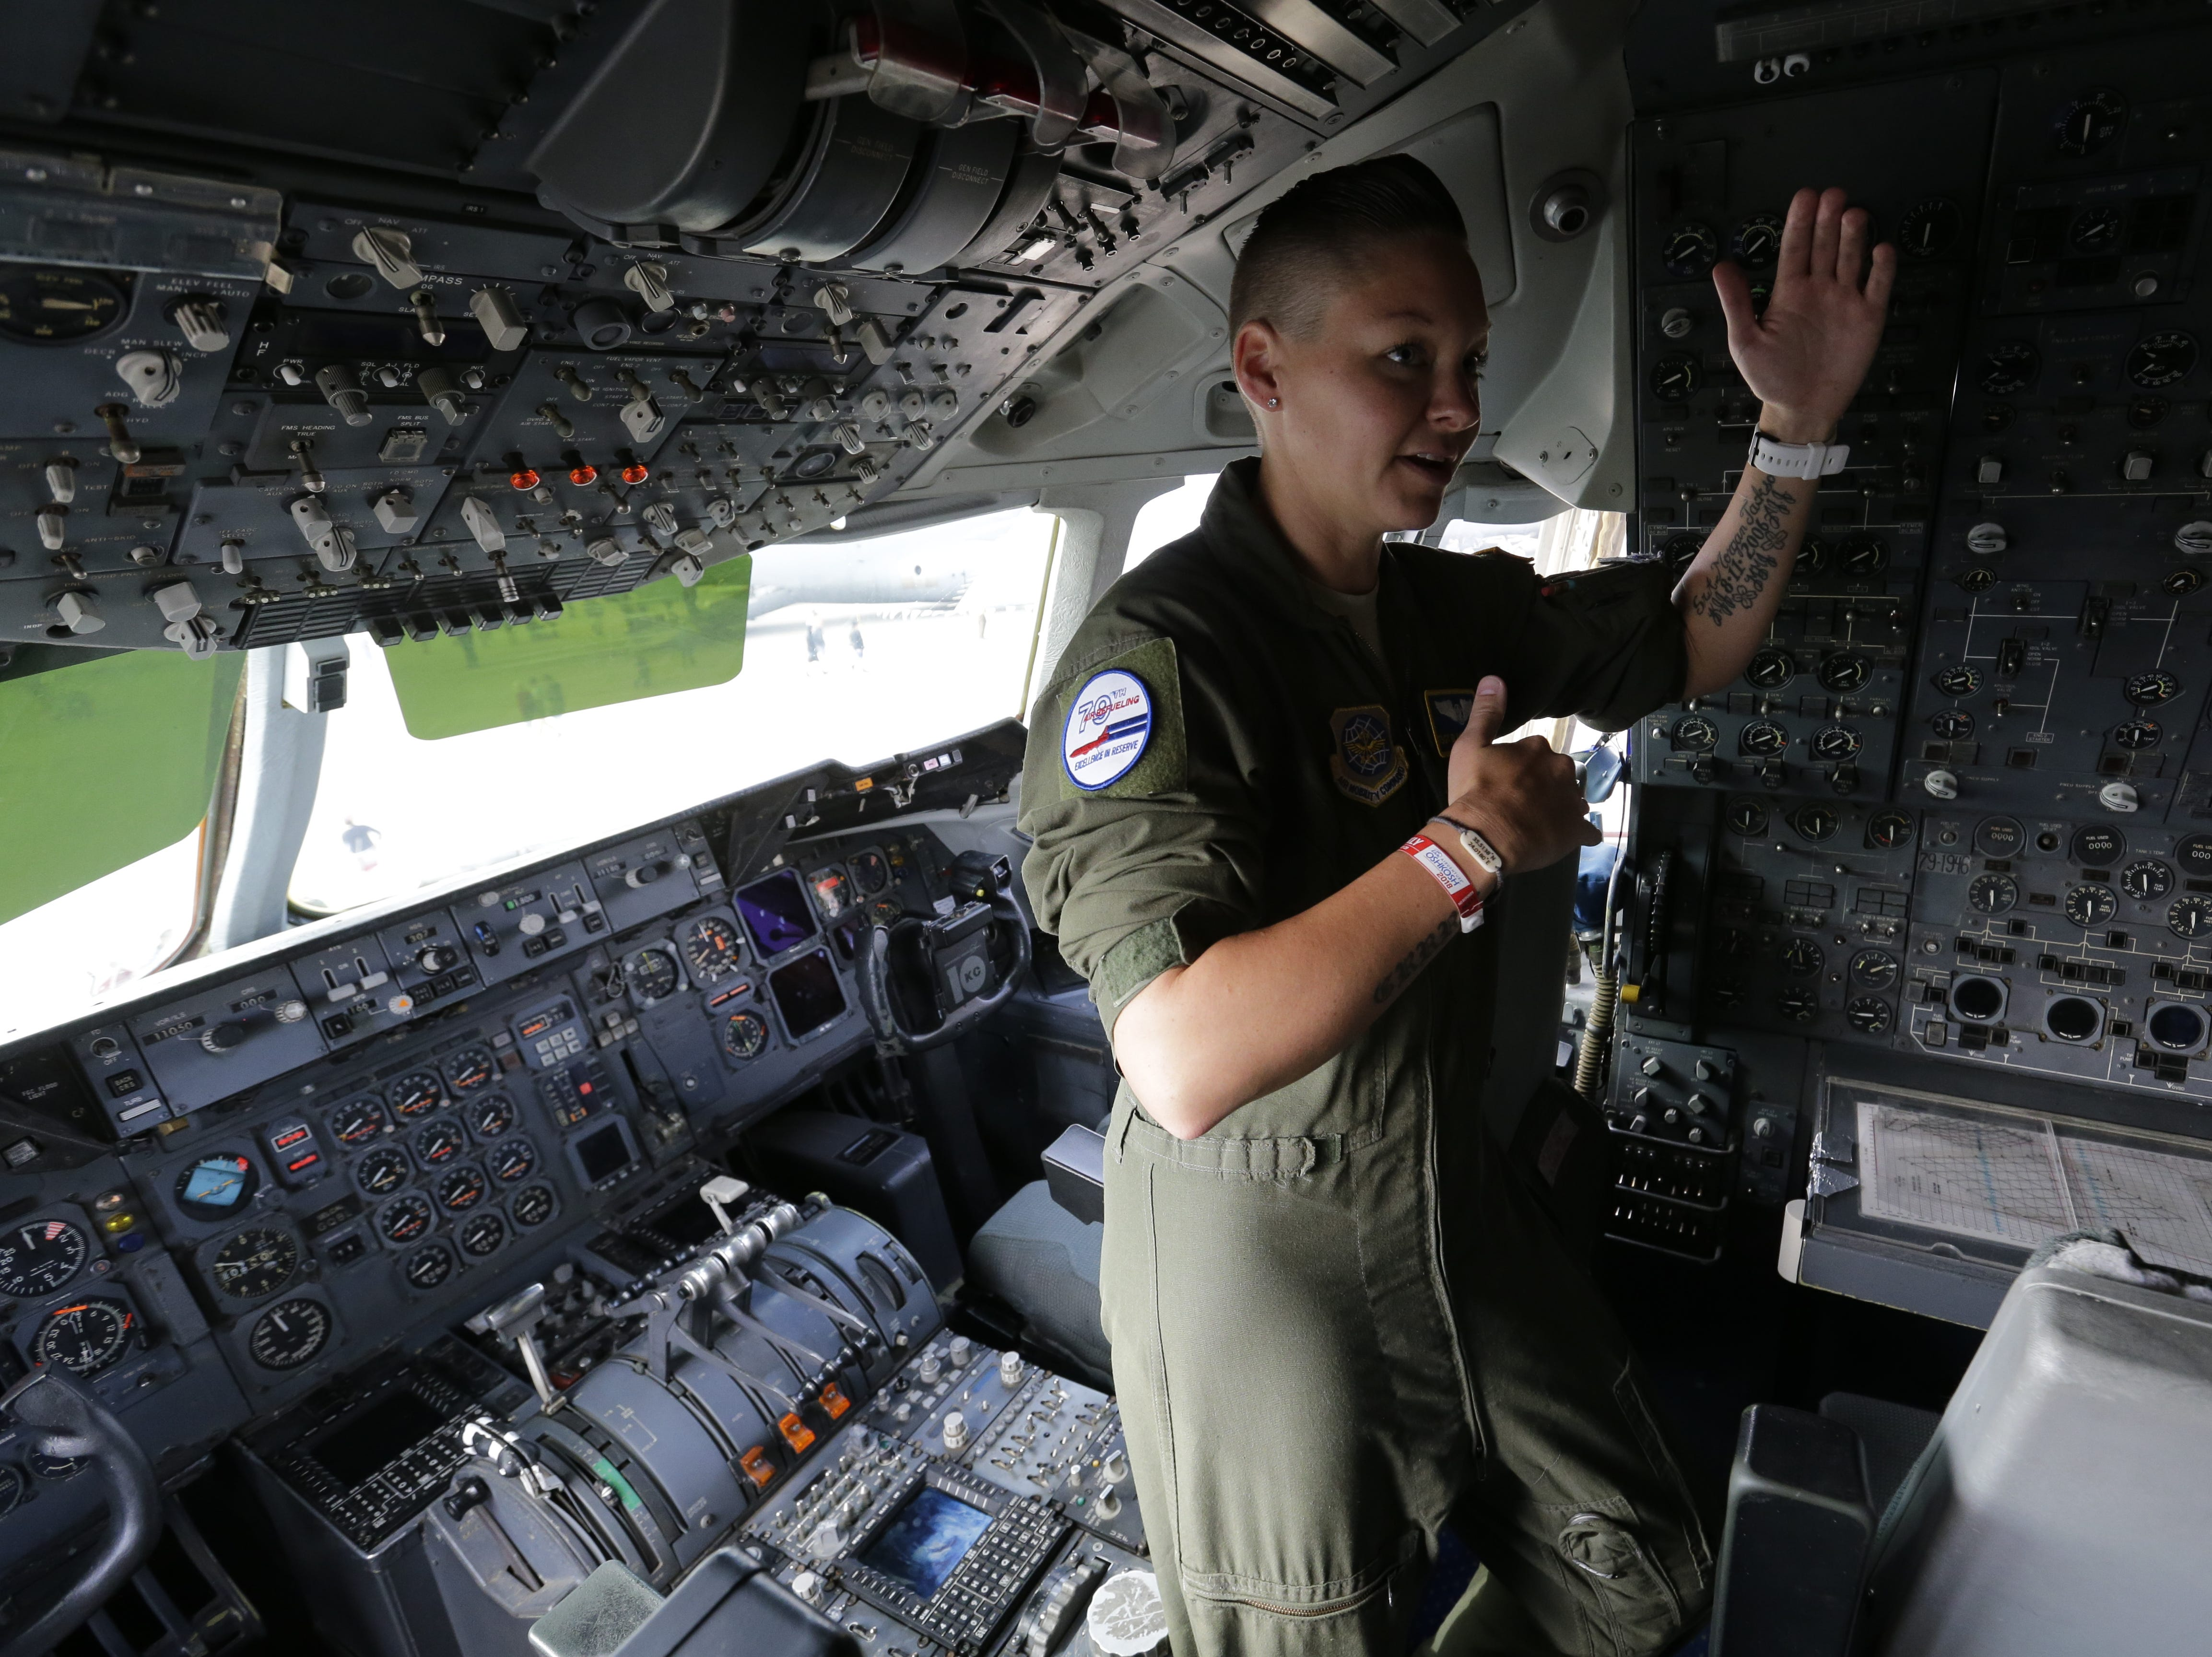 TSGT Blakeley Murdock, flight engineer, talks about her experience in the cockpit of the McDonnell Douglas KC-10 Extender, Friday, July 27, 2018, in Oshkosh, Wis.  The 66th annual Experimental Aircraft Association Fly-In Convention, AirVenture 2018 draws over 500,000 people and over 10,000 planes from more than 70 nations annually to the area.  The convention runs through July 29.Joe Sienkiewicz/USA Today NETWORK-Wisconsin